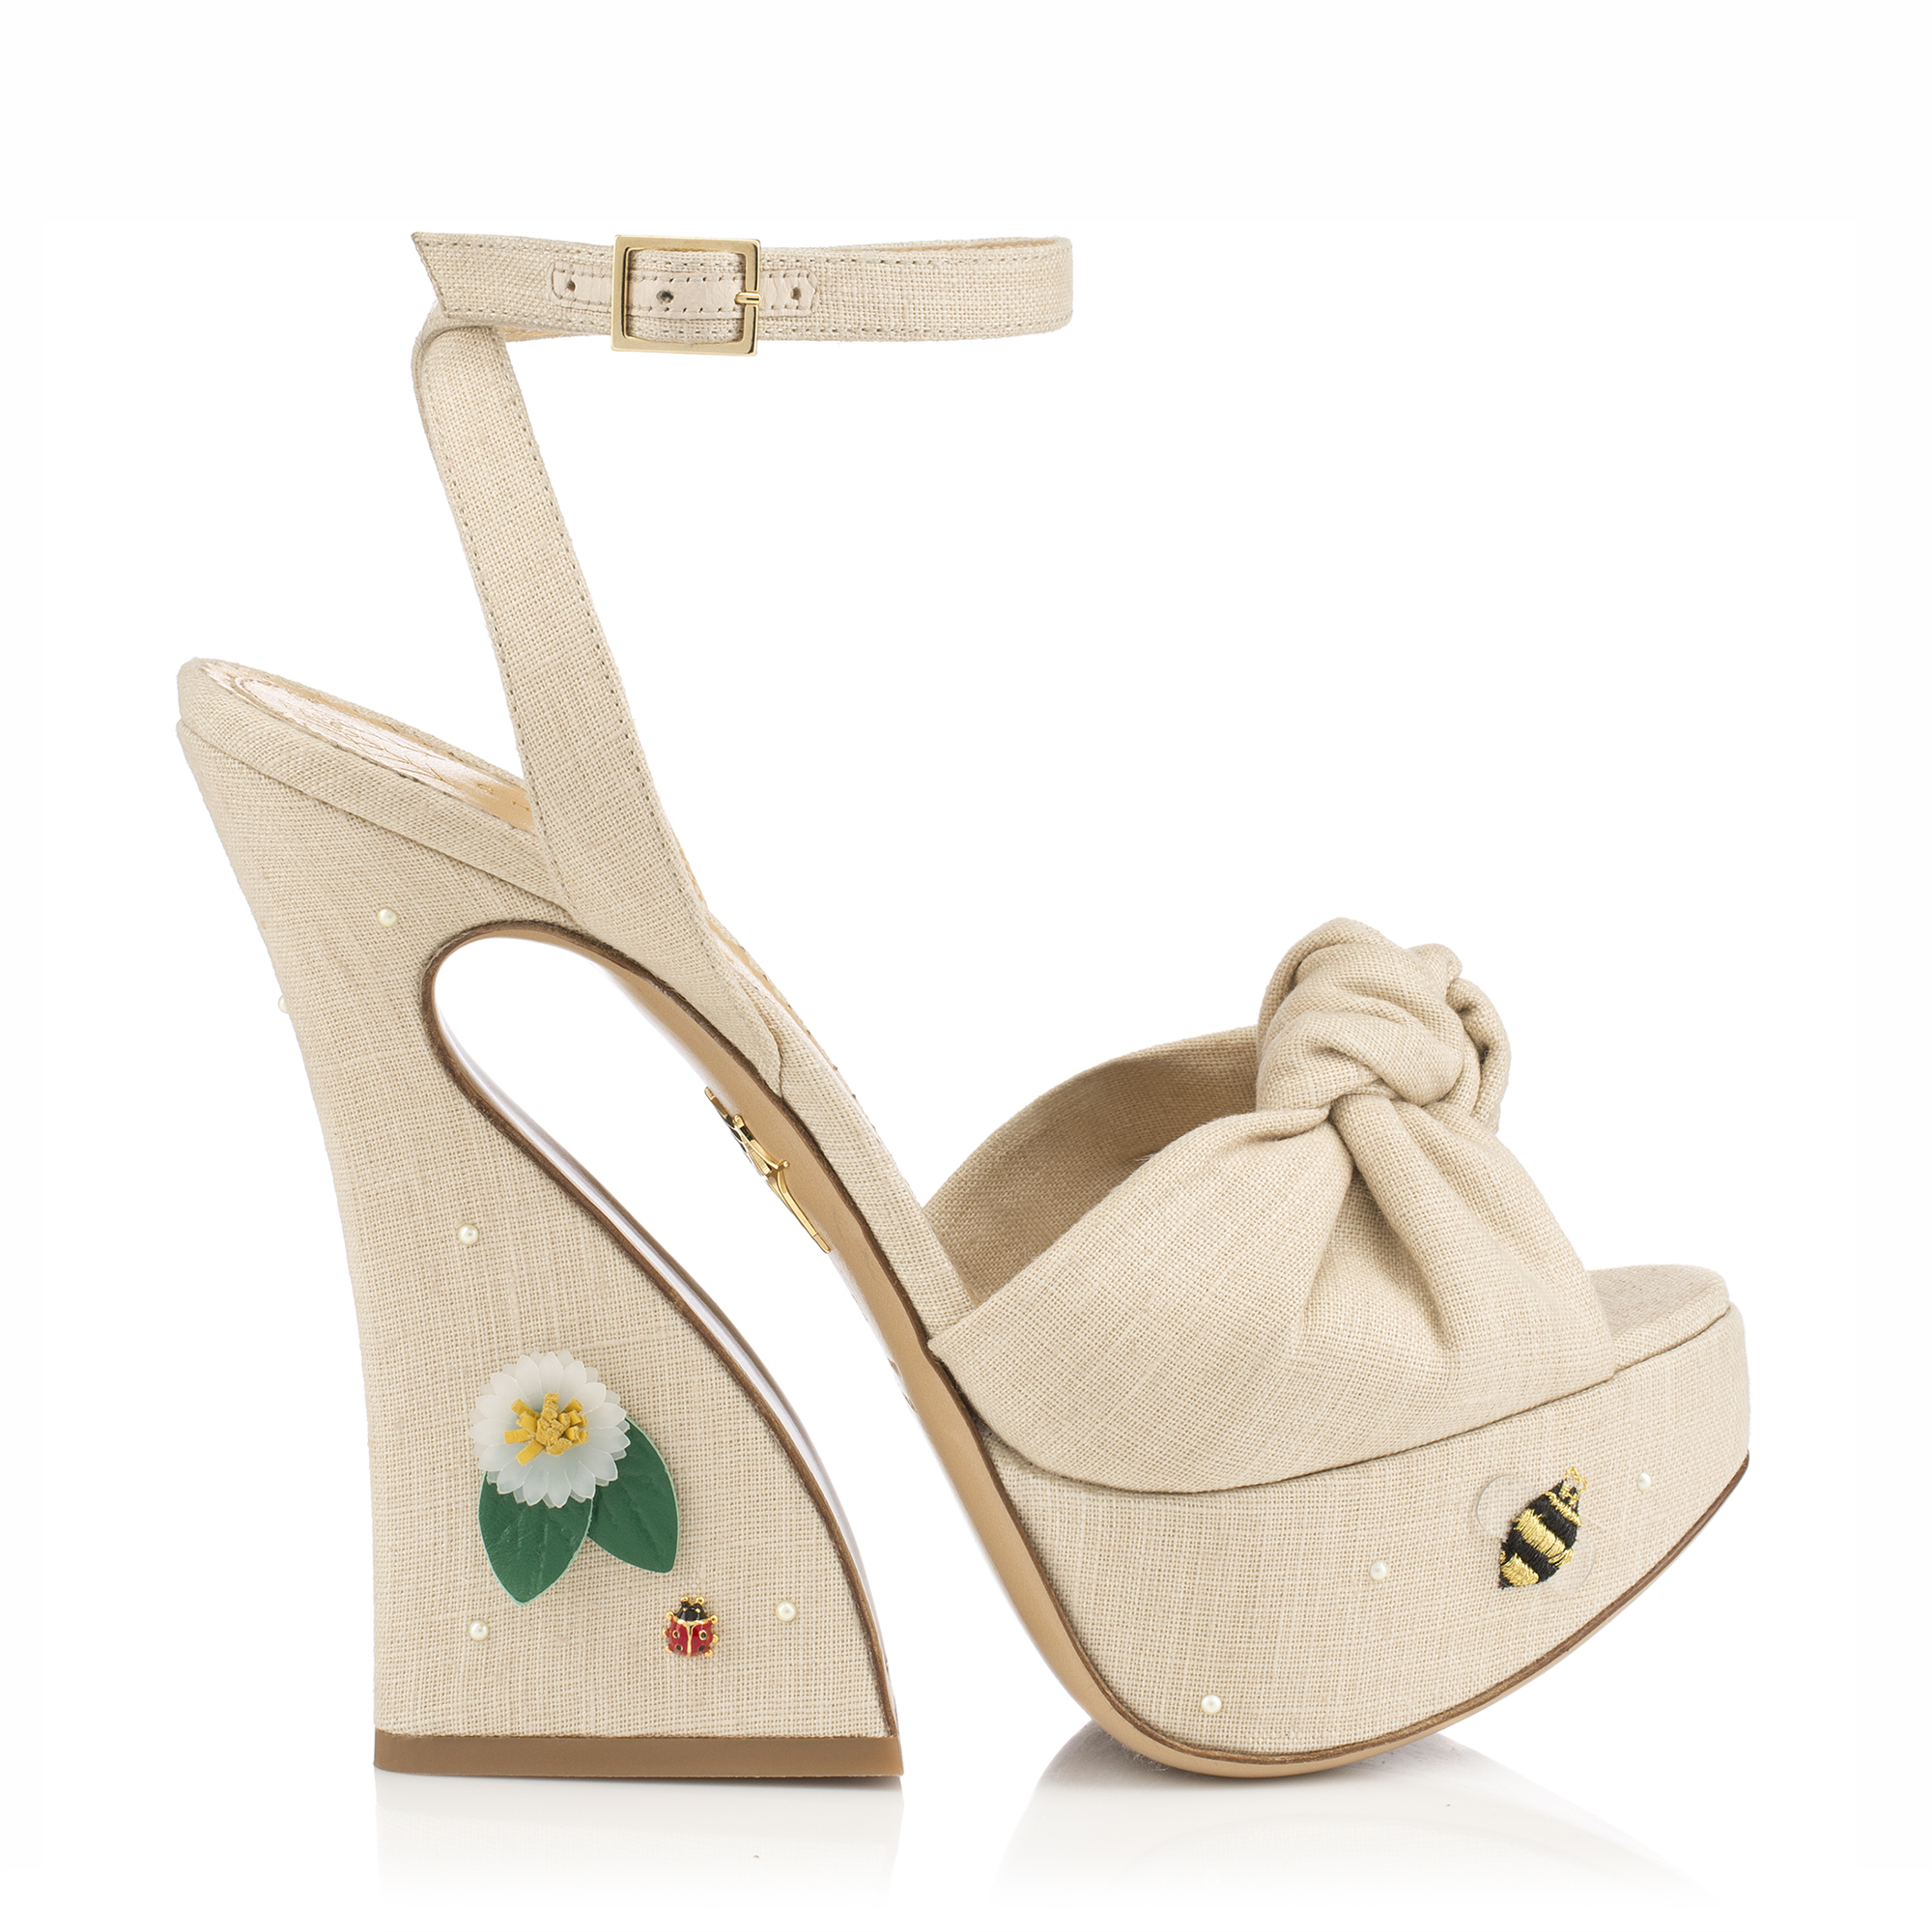 charlotte-olympia-floral-vreeland-aed-3000